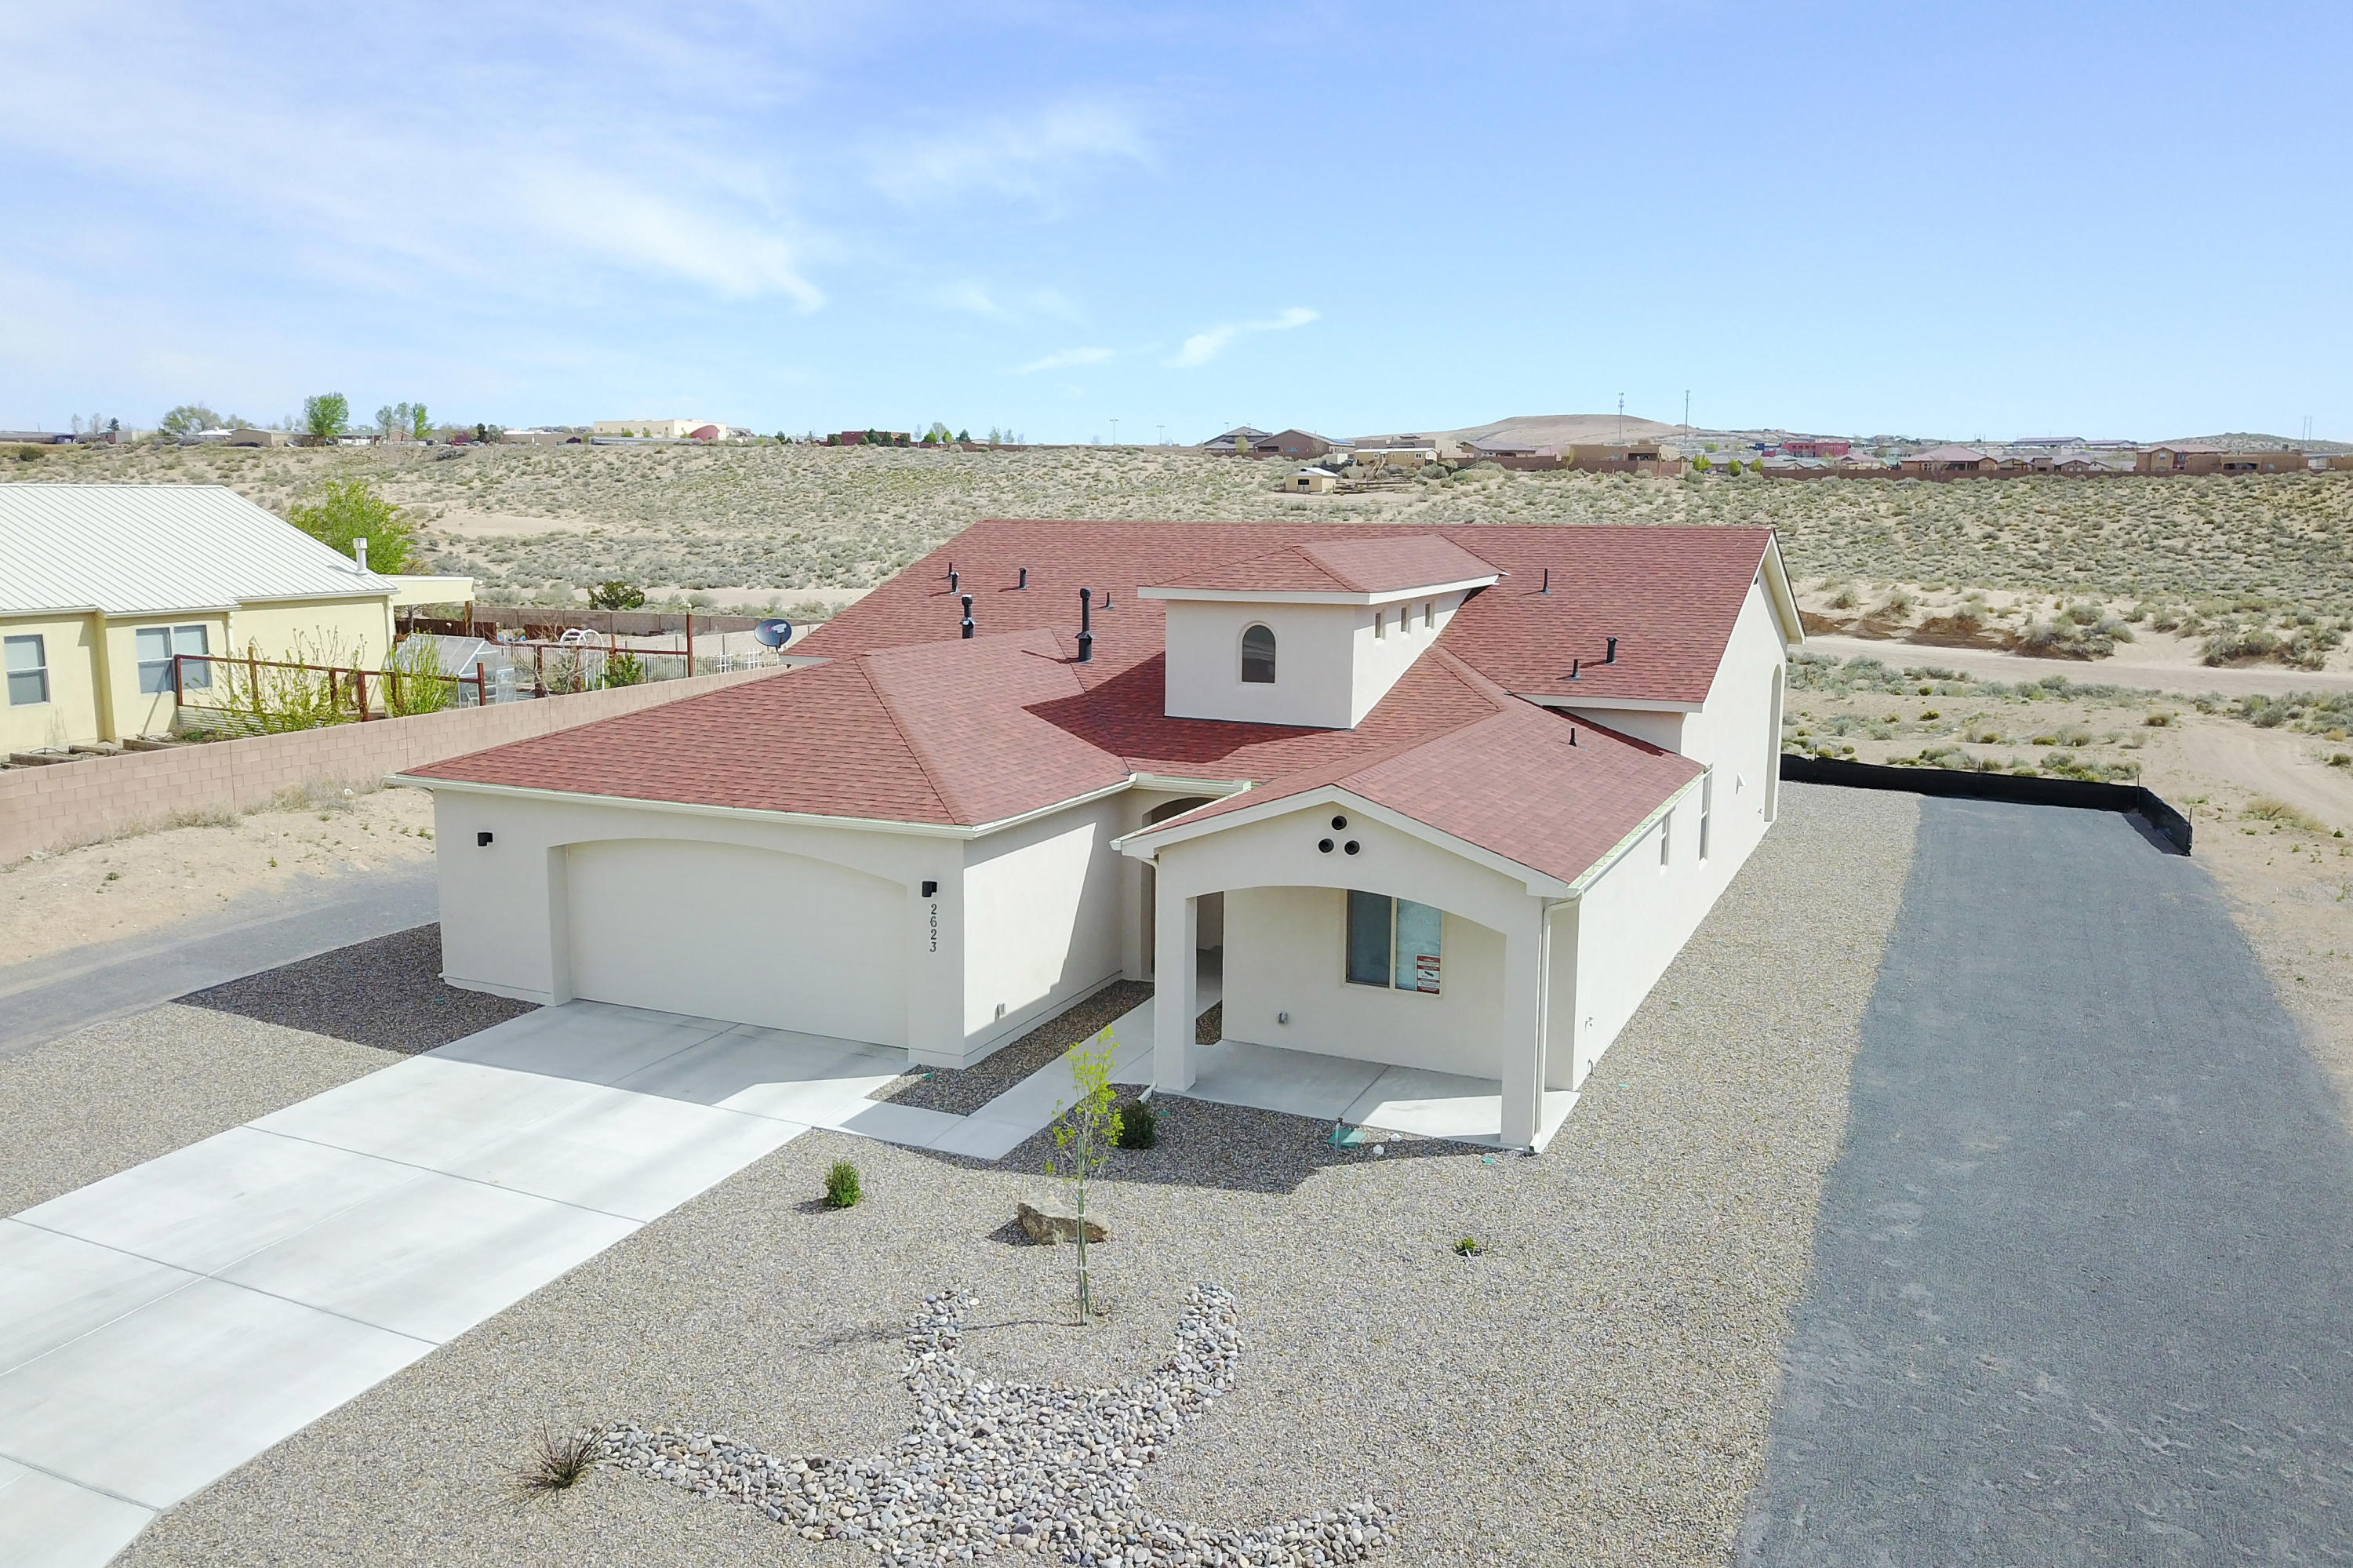 2623 NE Chessman Drive, Rio Rancho in Sandoval County, NM 87124 Home for Sale